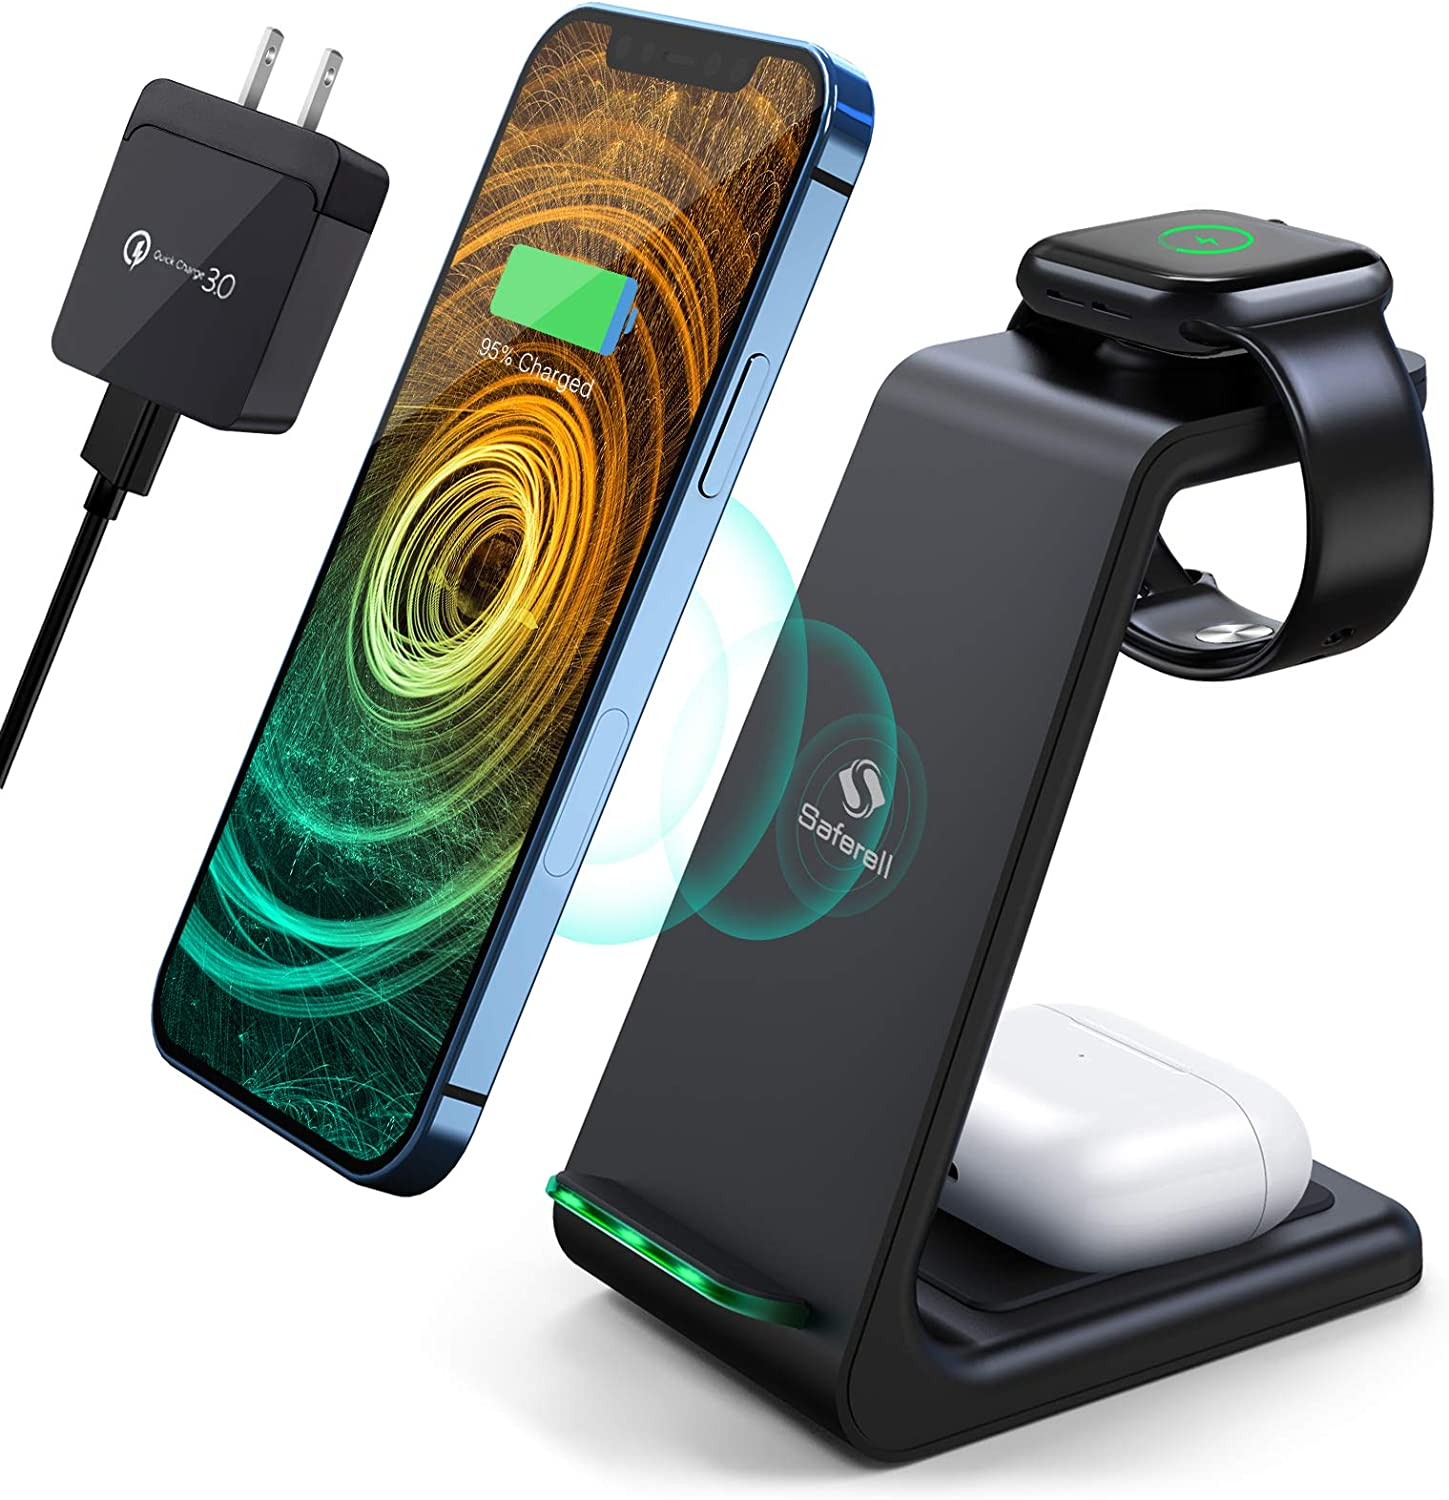 Wireless Charging Station, Saferell 3 in 1 Fast Charging Station,Wireless Charger Stand for iPhone 12/11 Pro Max/X/Xs Max/8/8 Plus, AirPods 2/pro, iWatch Series, and Samsung Phones